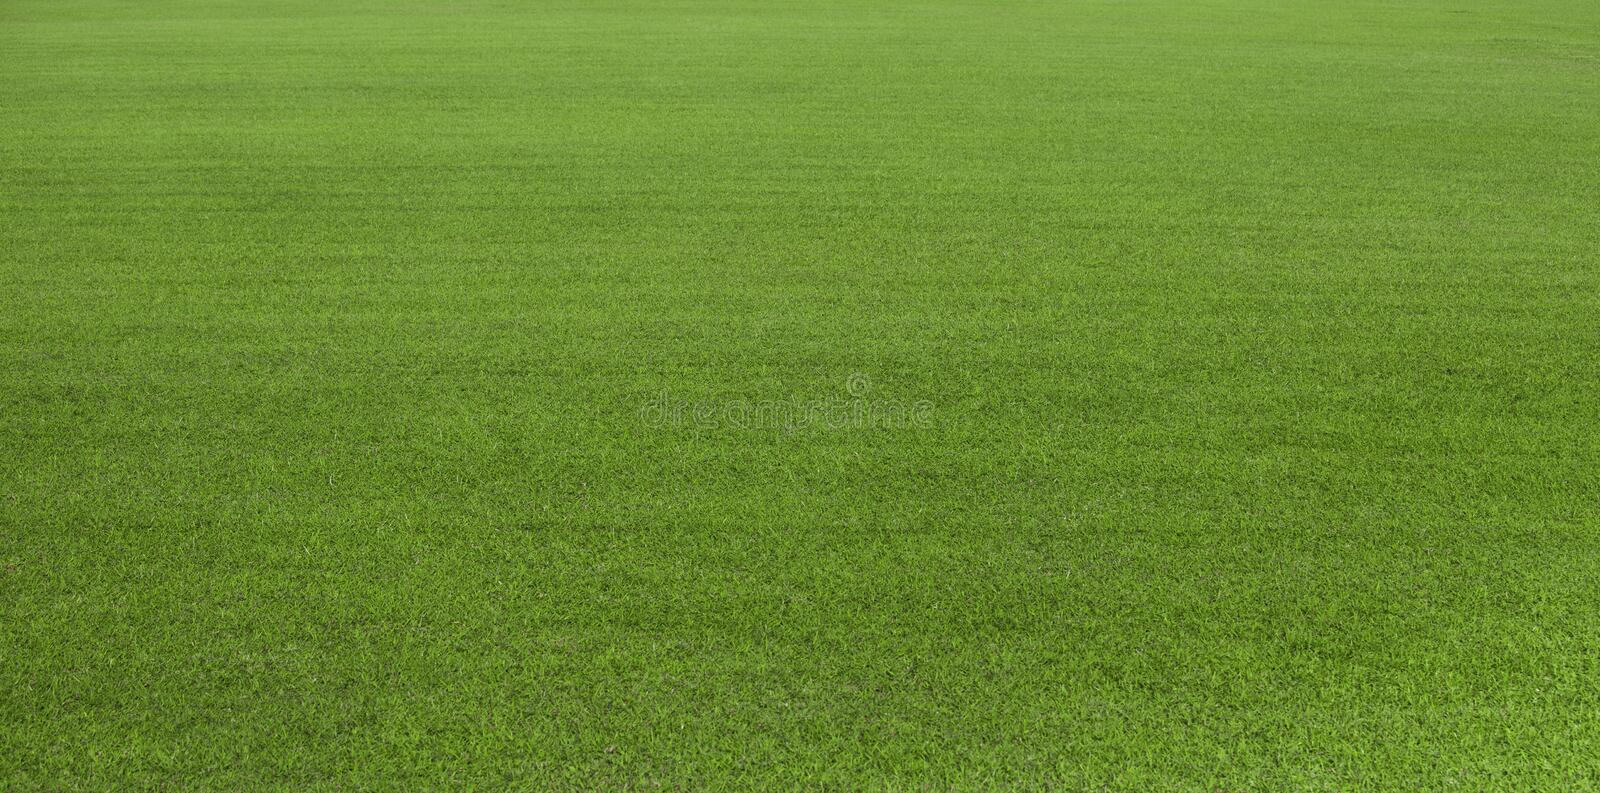 Green grass field, green lawn. Green grass for golf course, soccer, football, sport. Green turf grass texture and background for d stock image